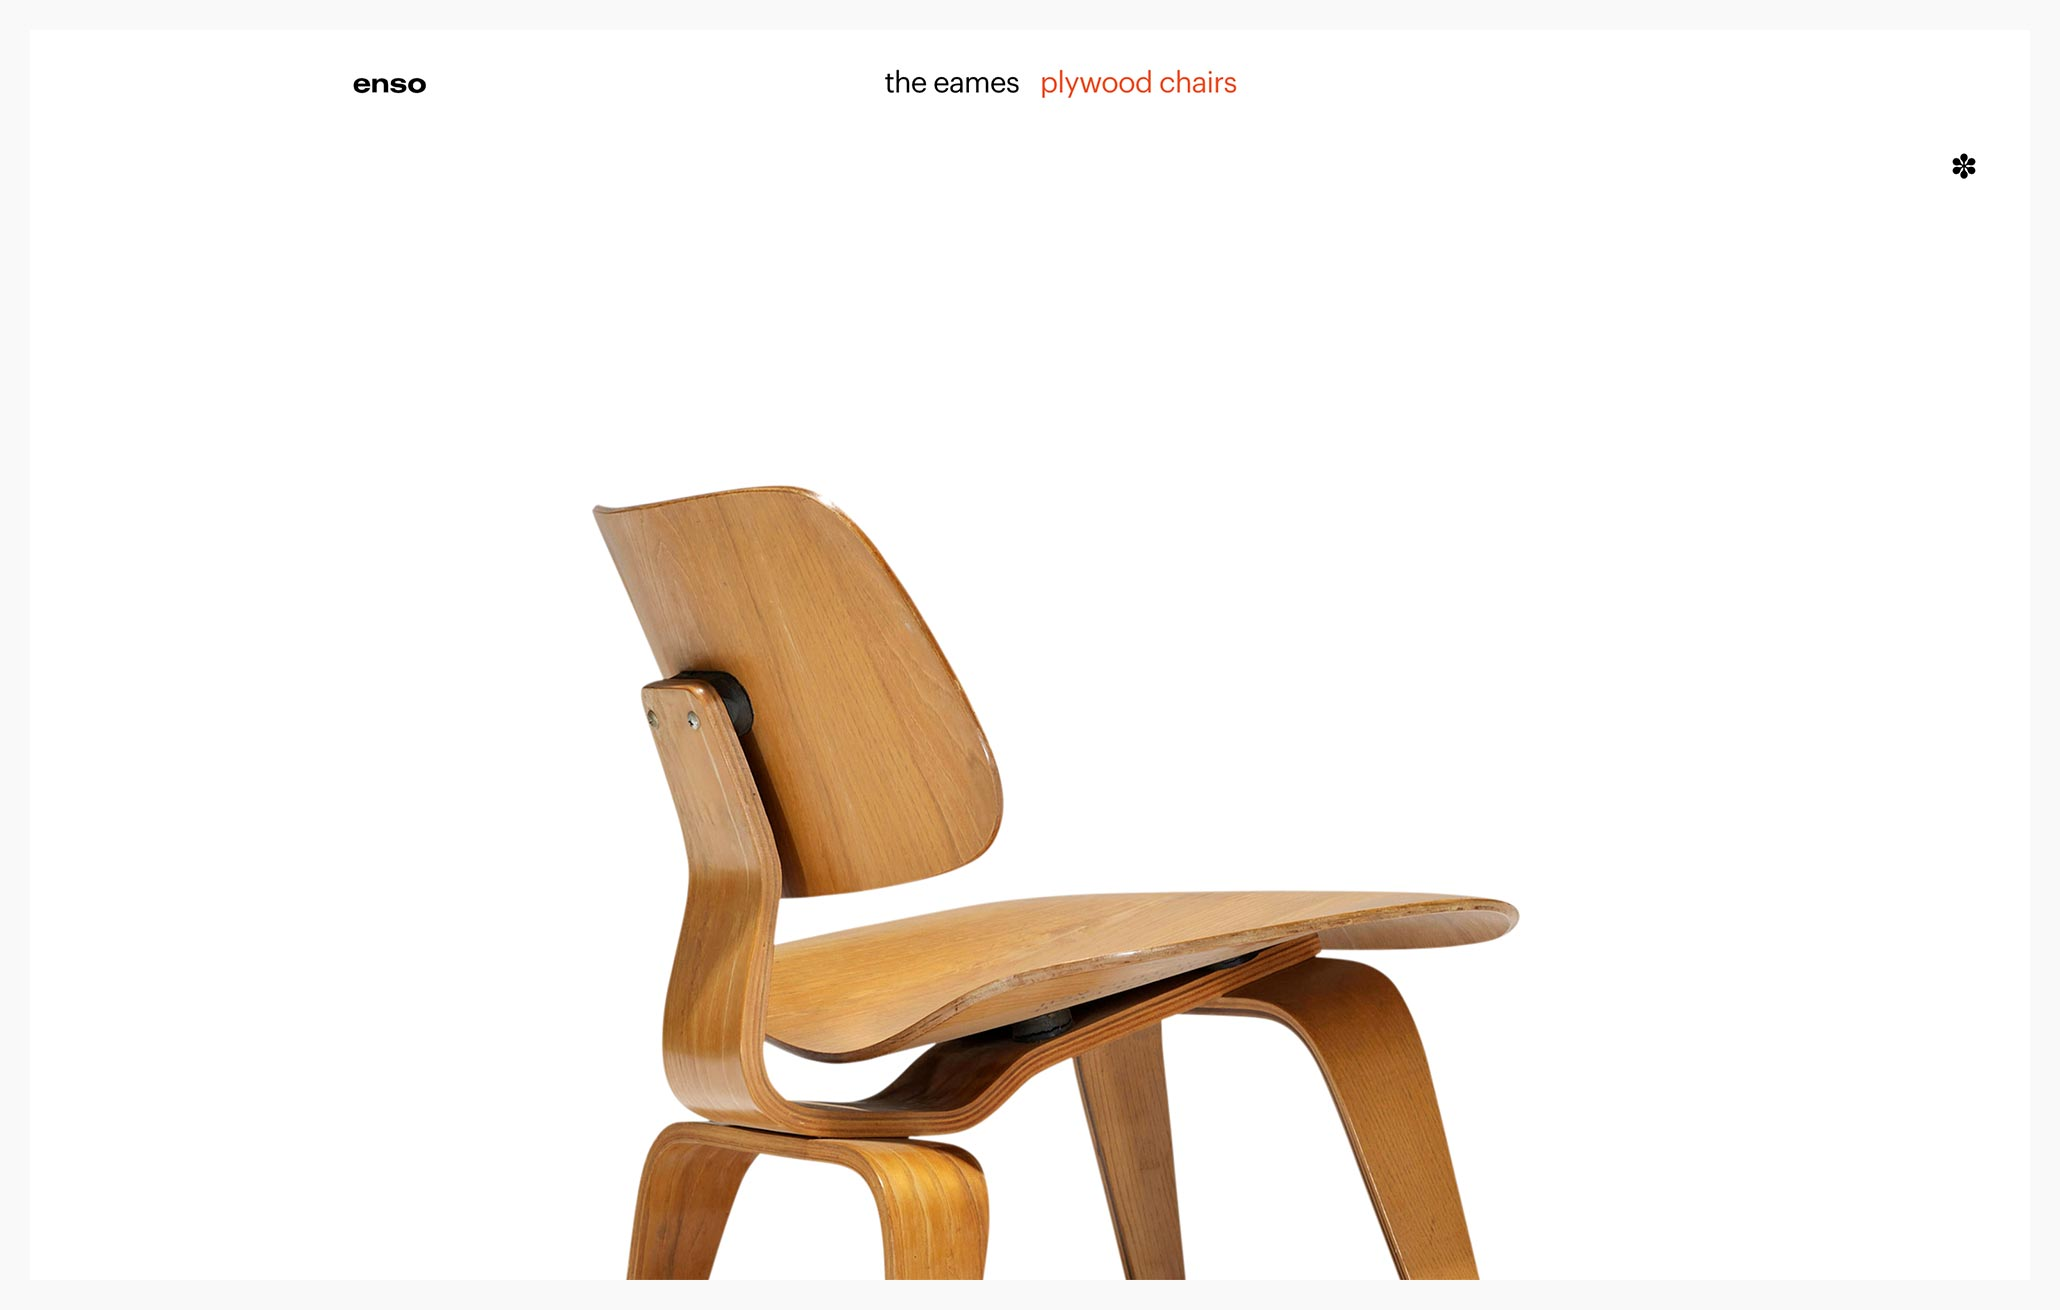 Ray & Charles Eames - Best Architecture Website of 2019